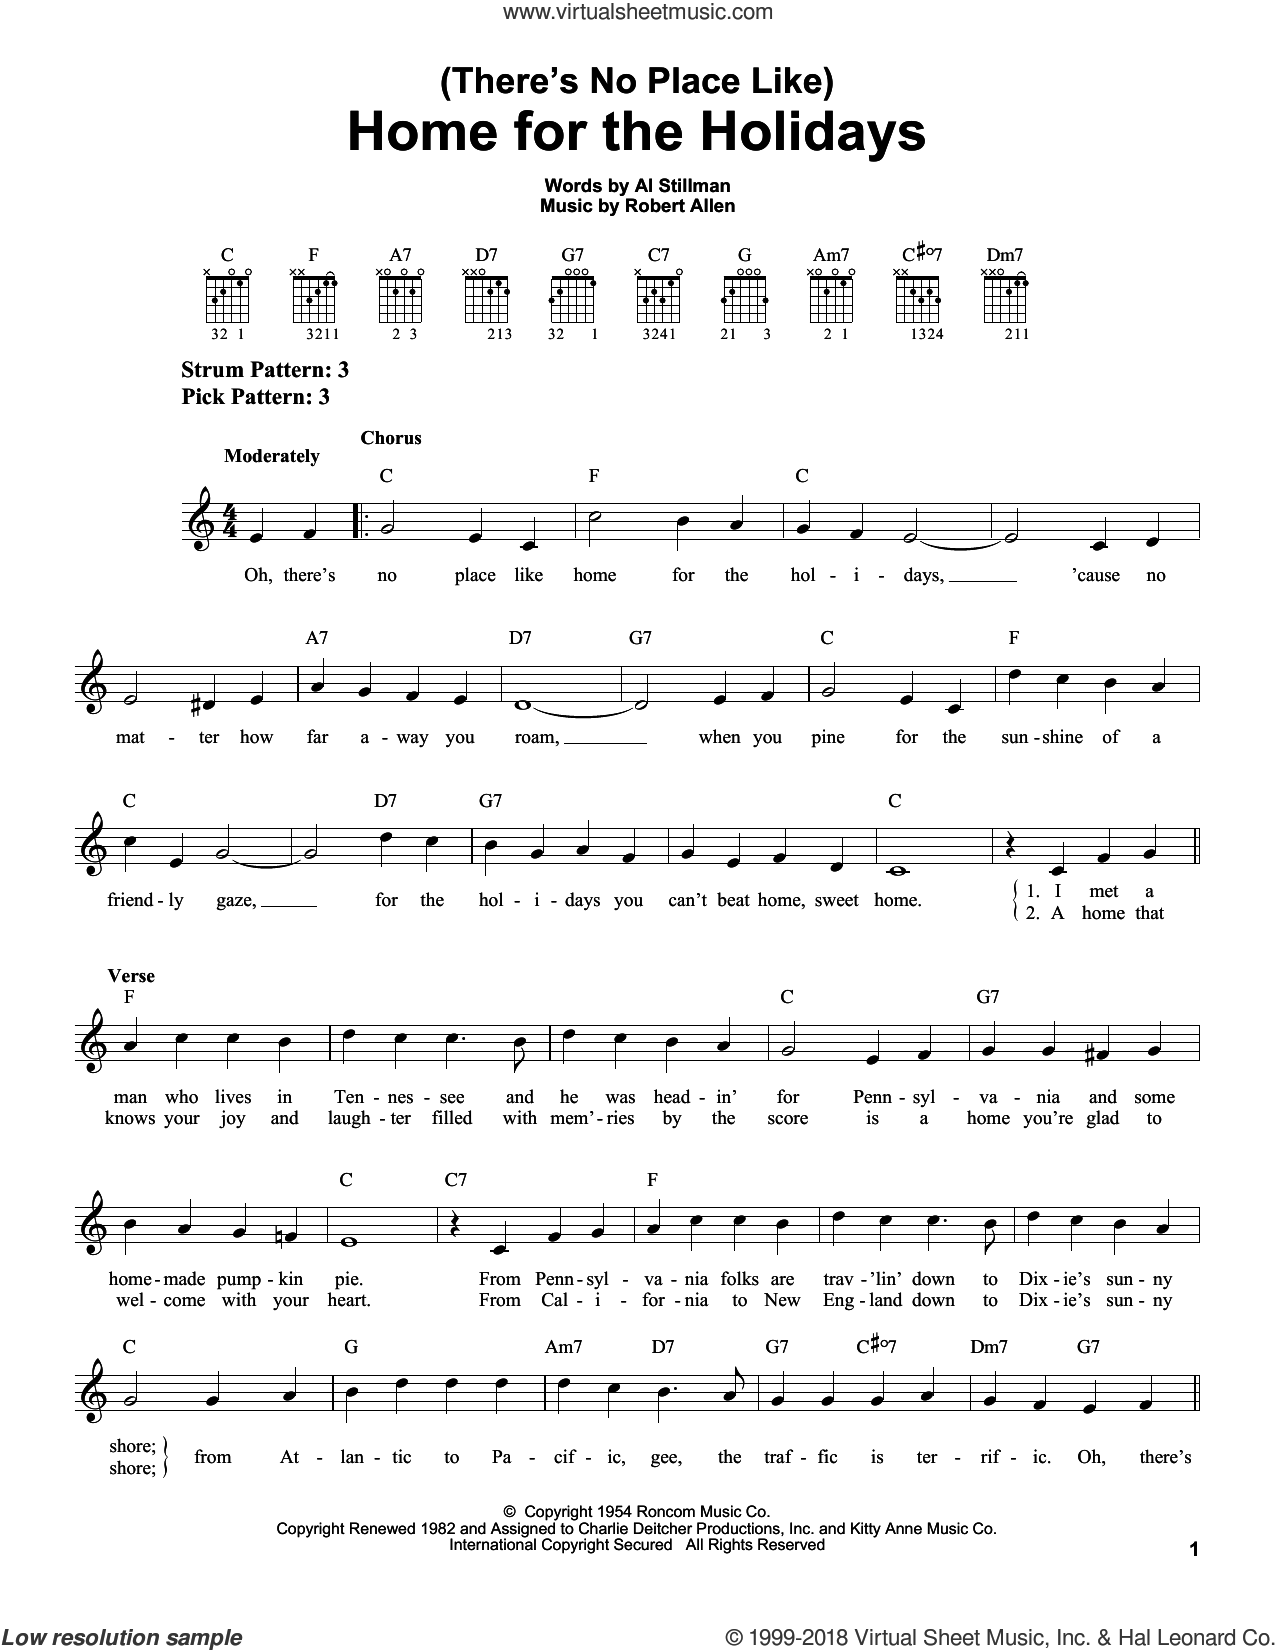 (There's No Place Like) Home For The Holidays sheet music for guitar solo (chords) by Robert Allen, Perry Como and Al Stillman. Score Image Preview.